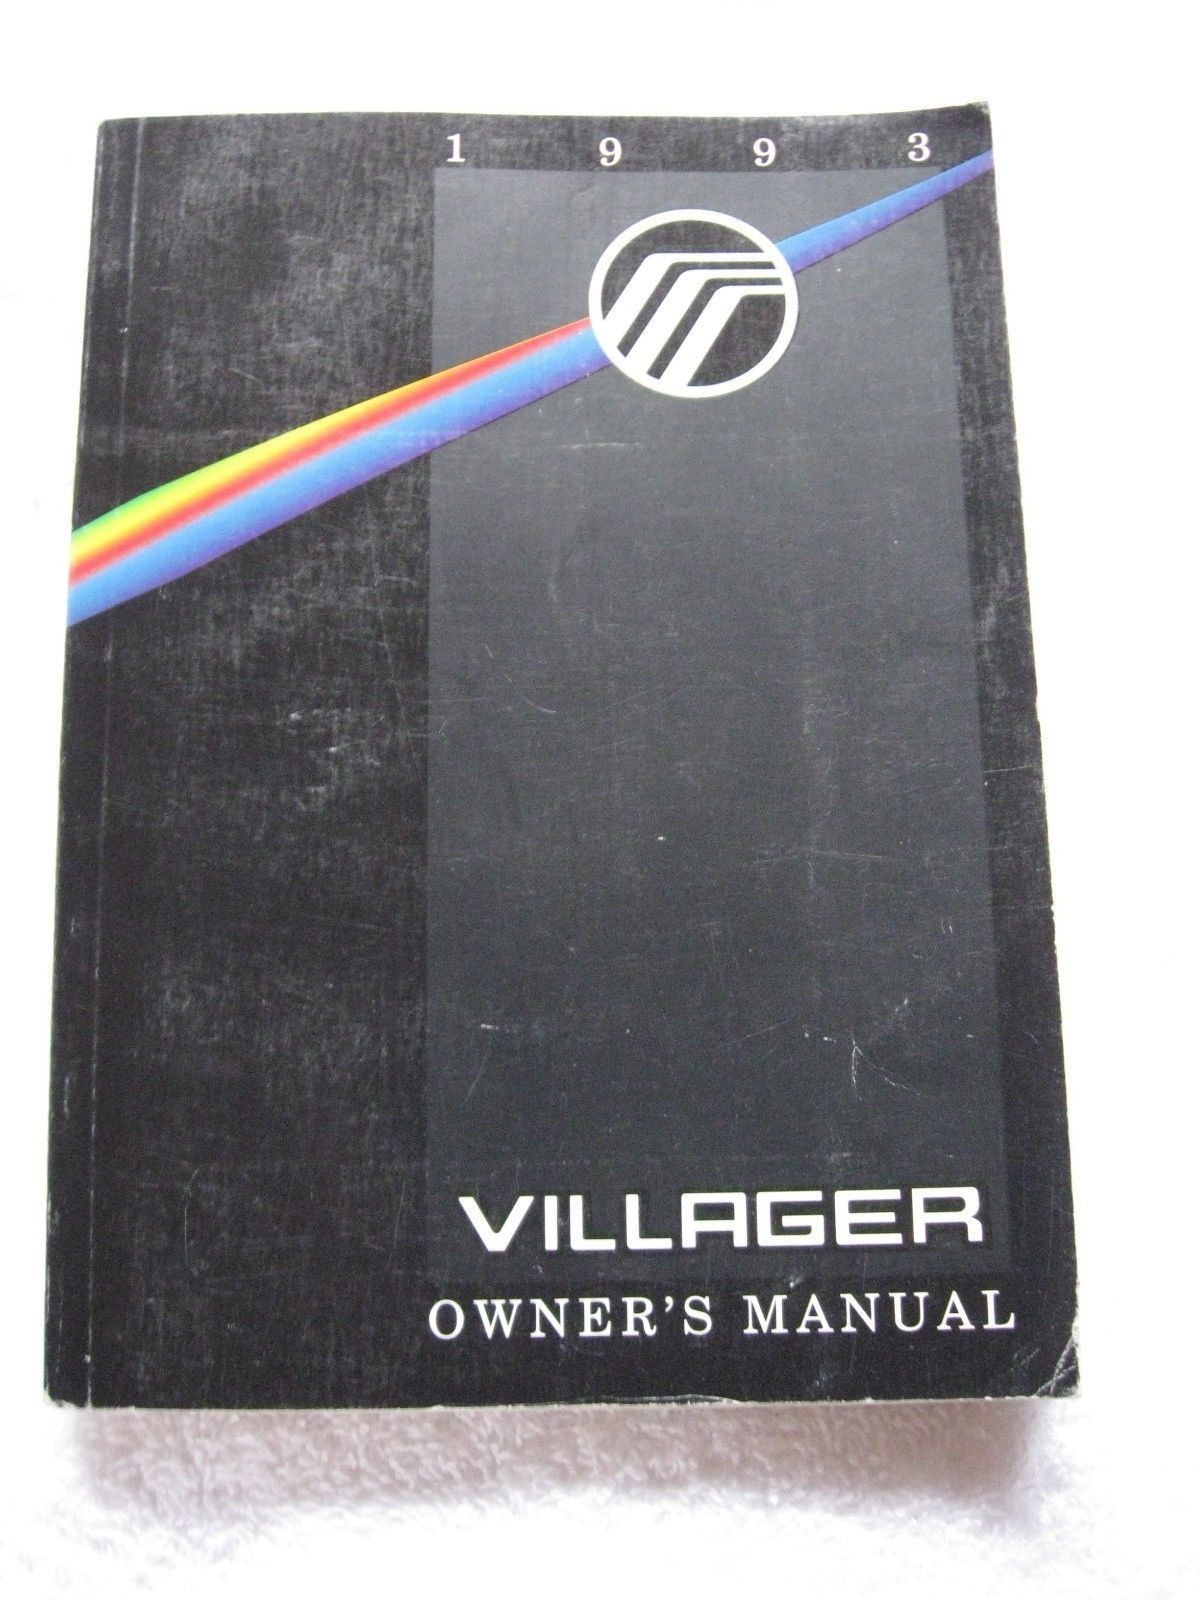 1992 Buick Regal Owners Manual!!! - $12.95